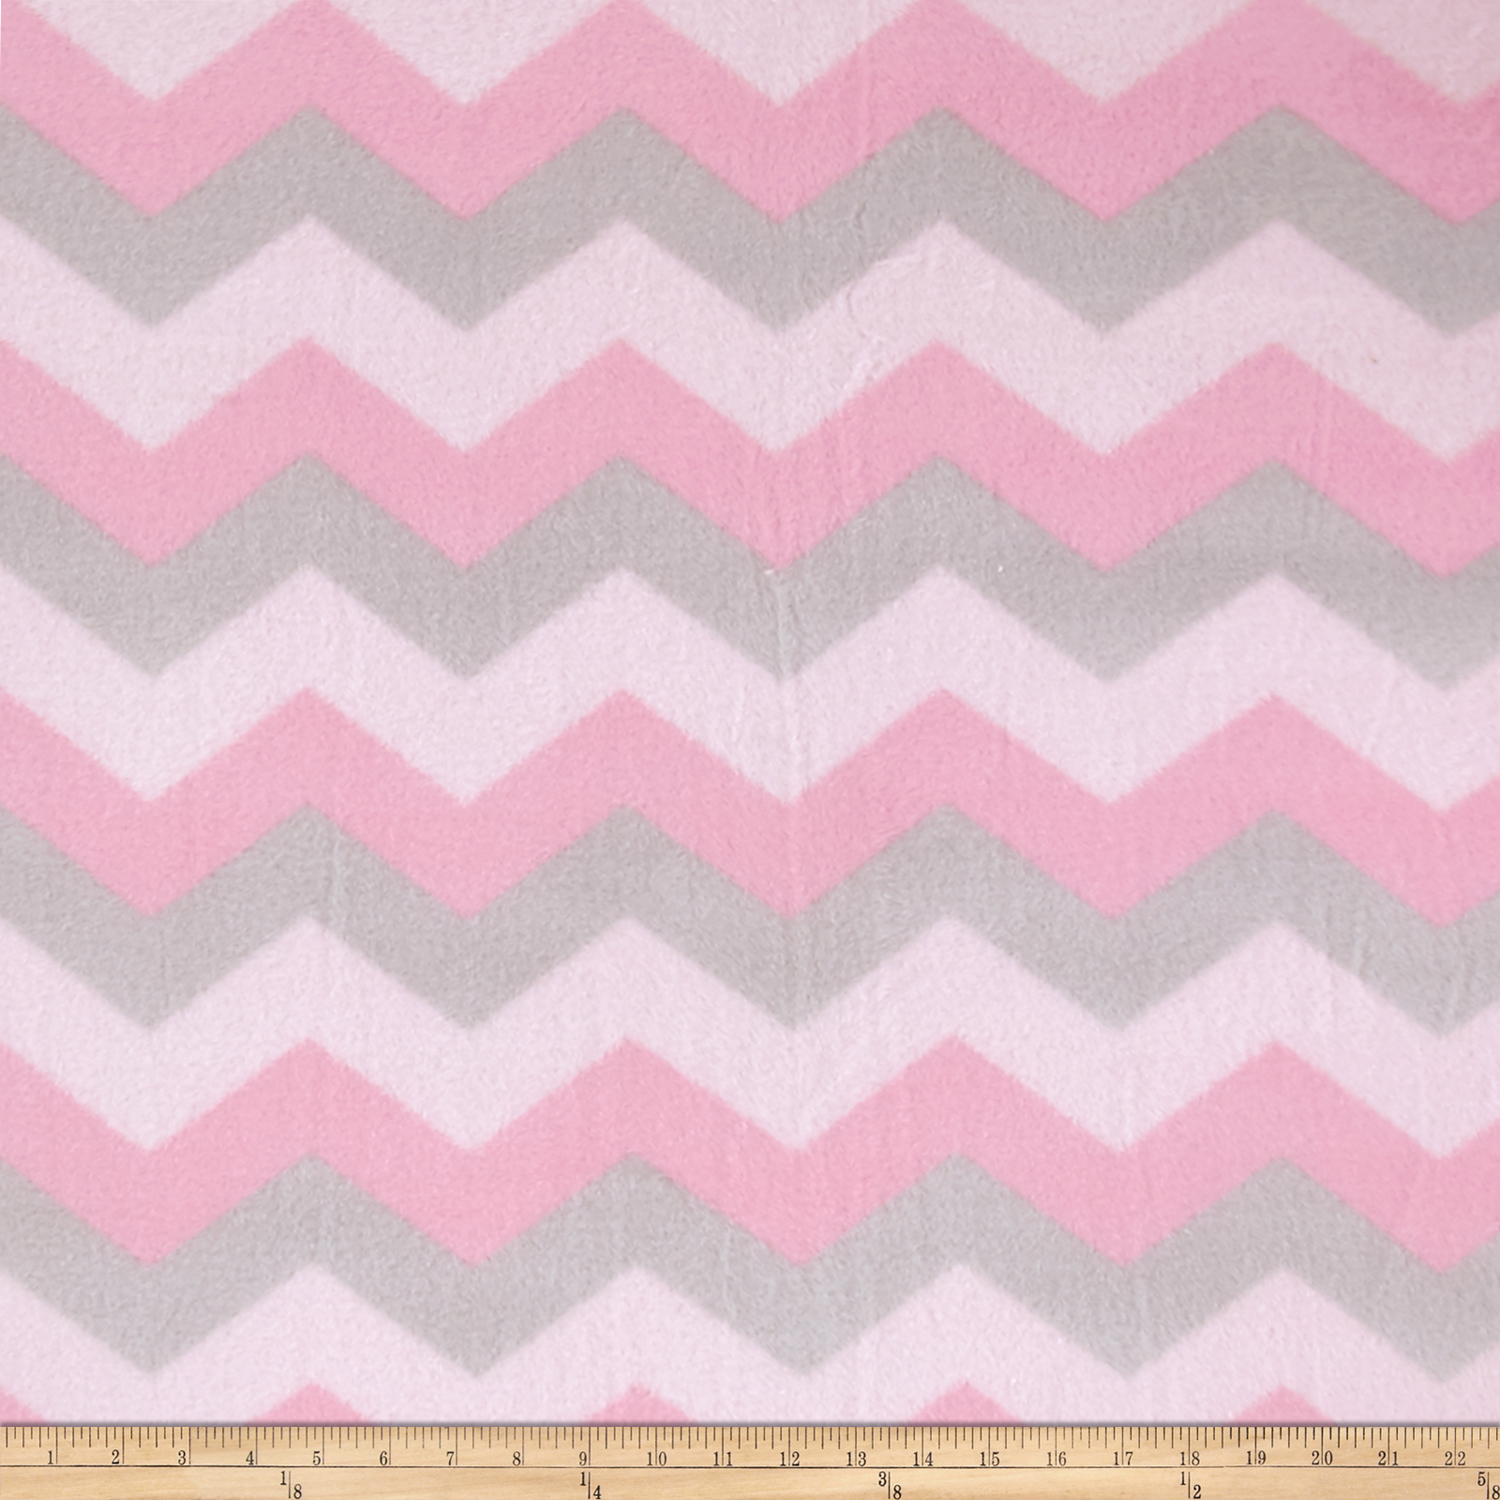 Winterfleece Chevron Pink Fabric